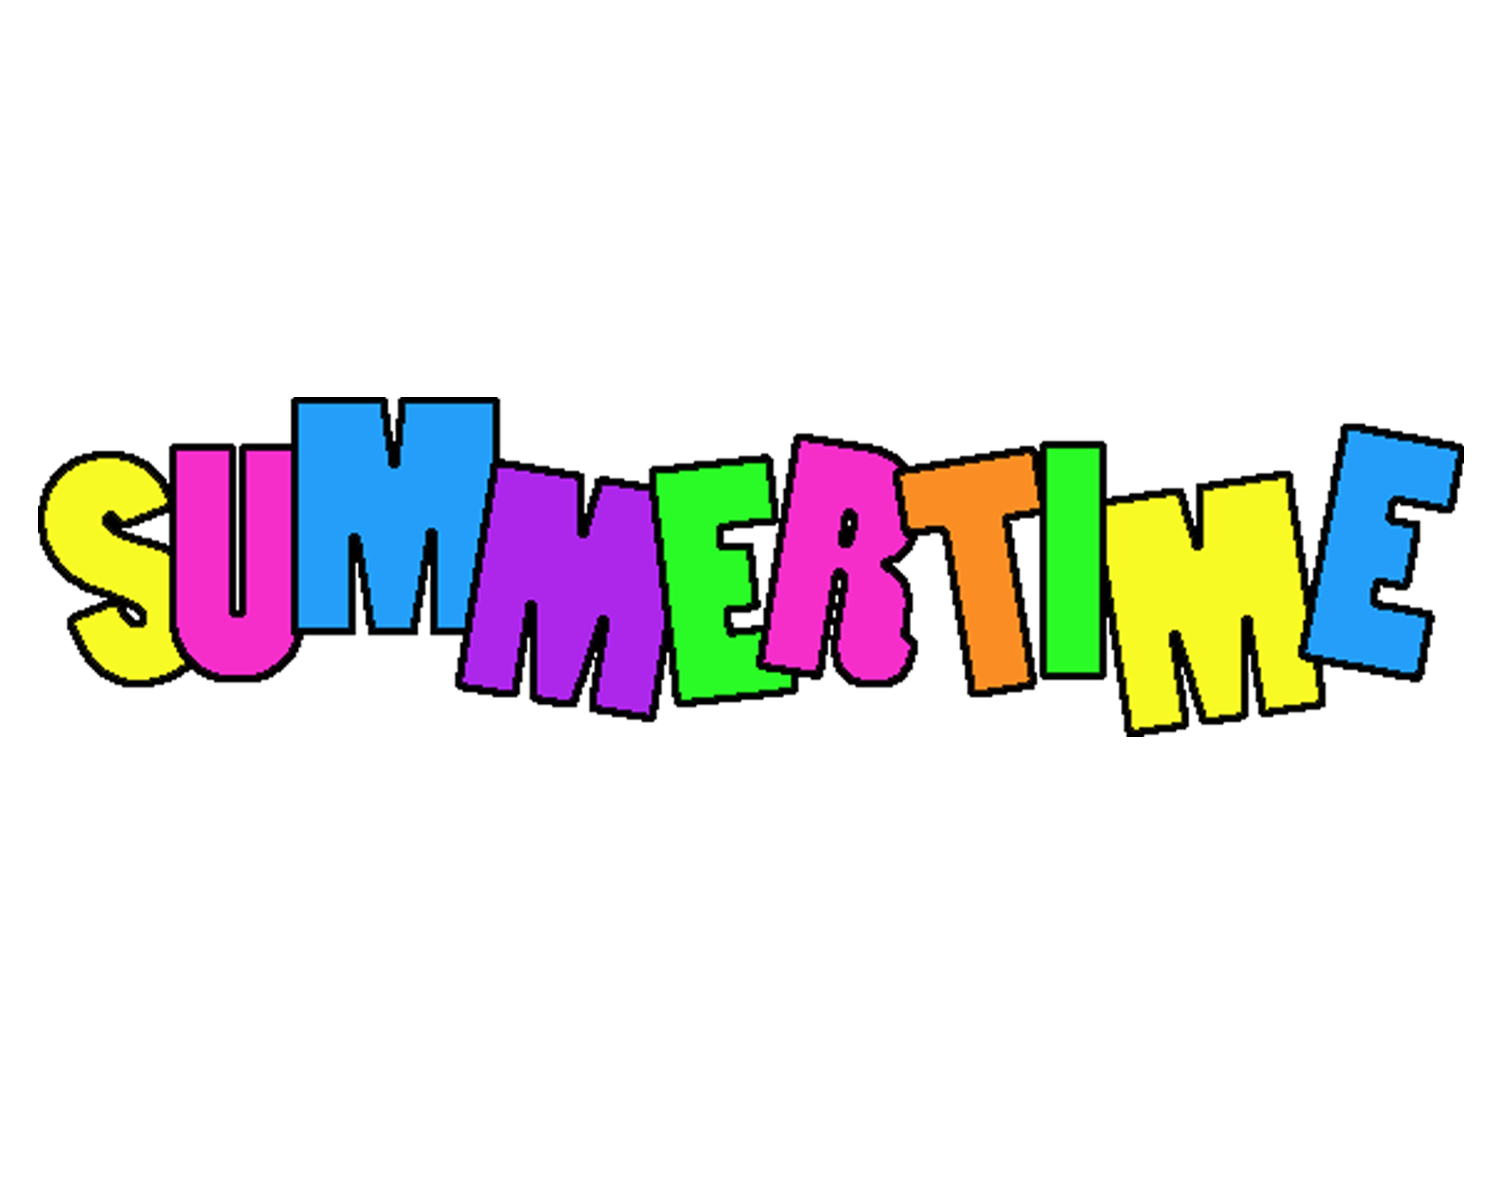 Rime clipart cruel punishment Summertime Ben Kendall clipart Nicole